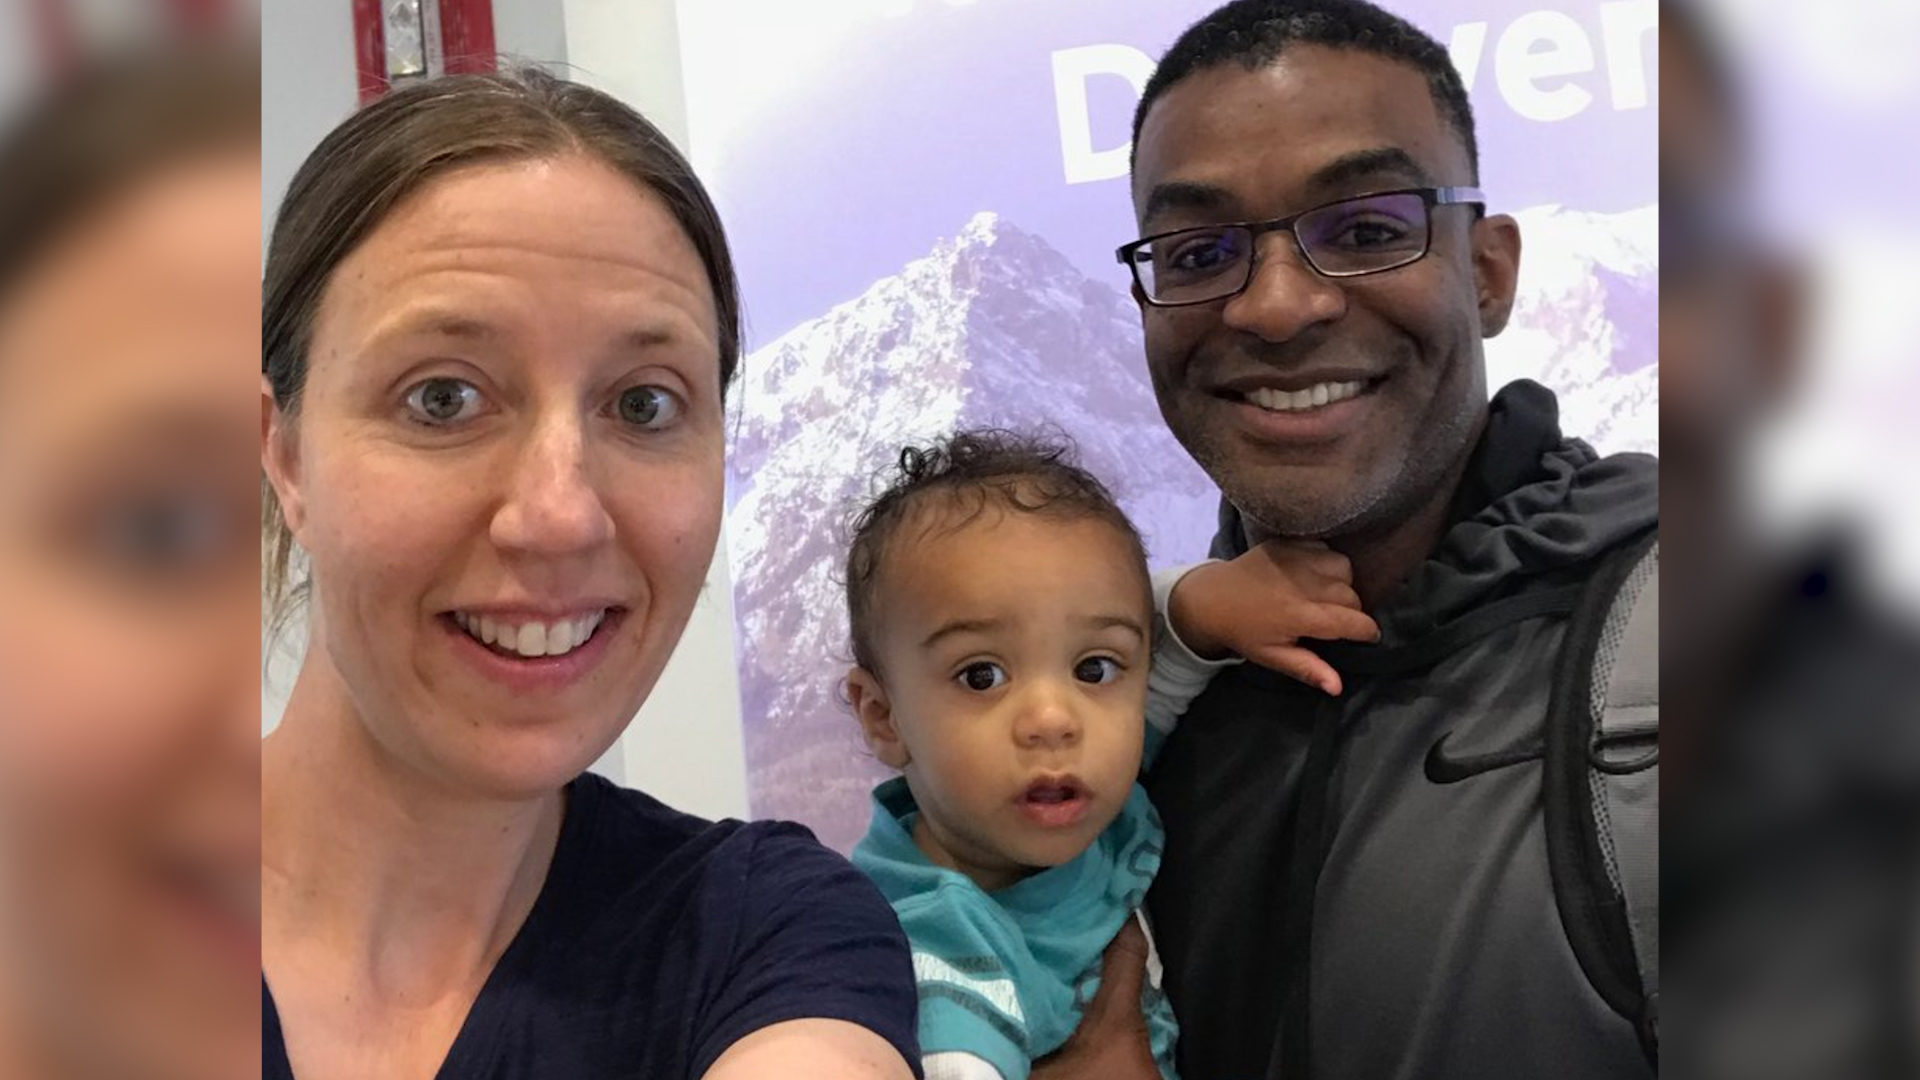 Southwest Airlines Comes Under Fire After An Agent Asks A Mom To Prove Biracial Child Is Hers Cnn